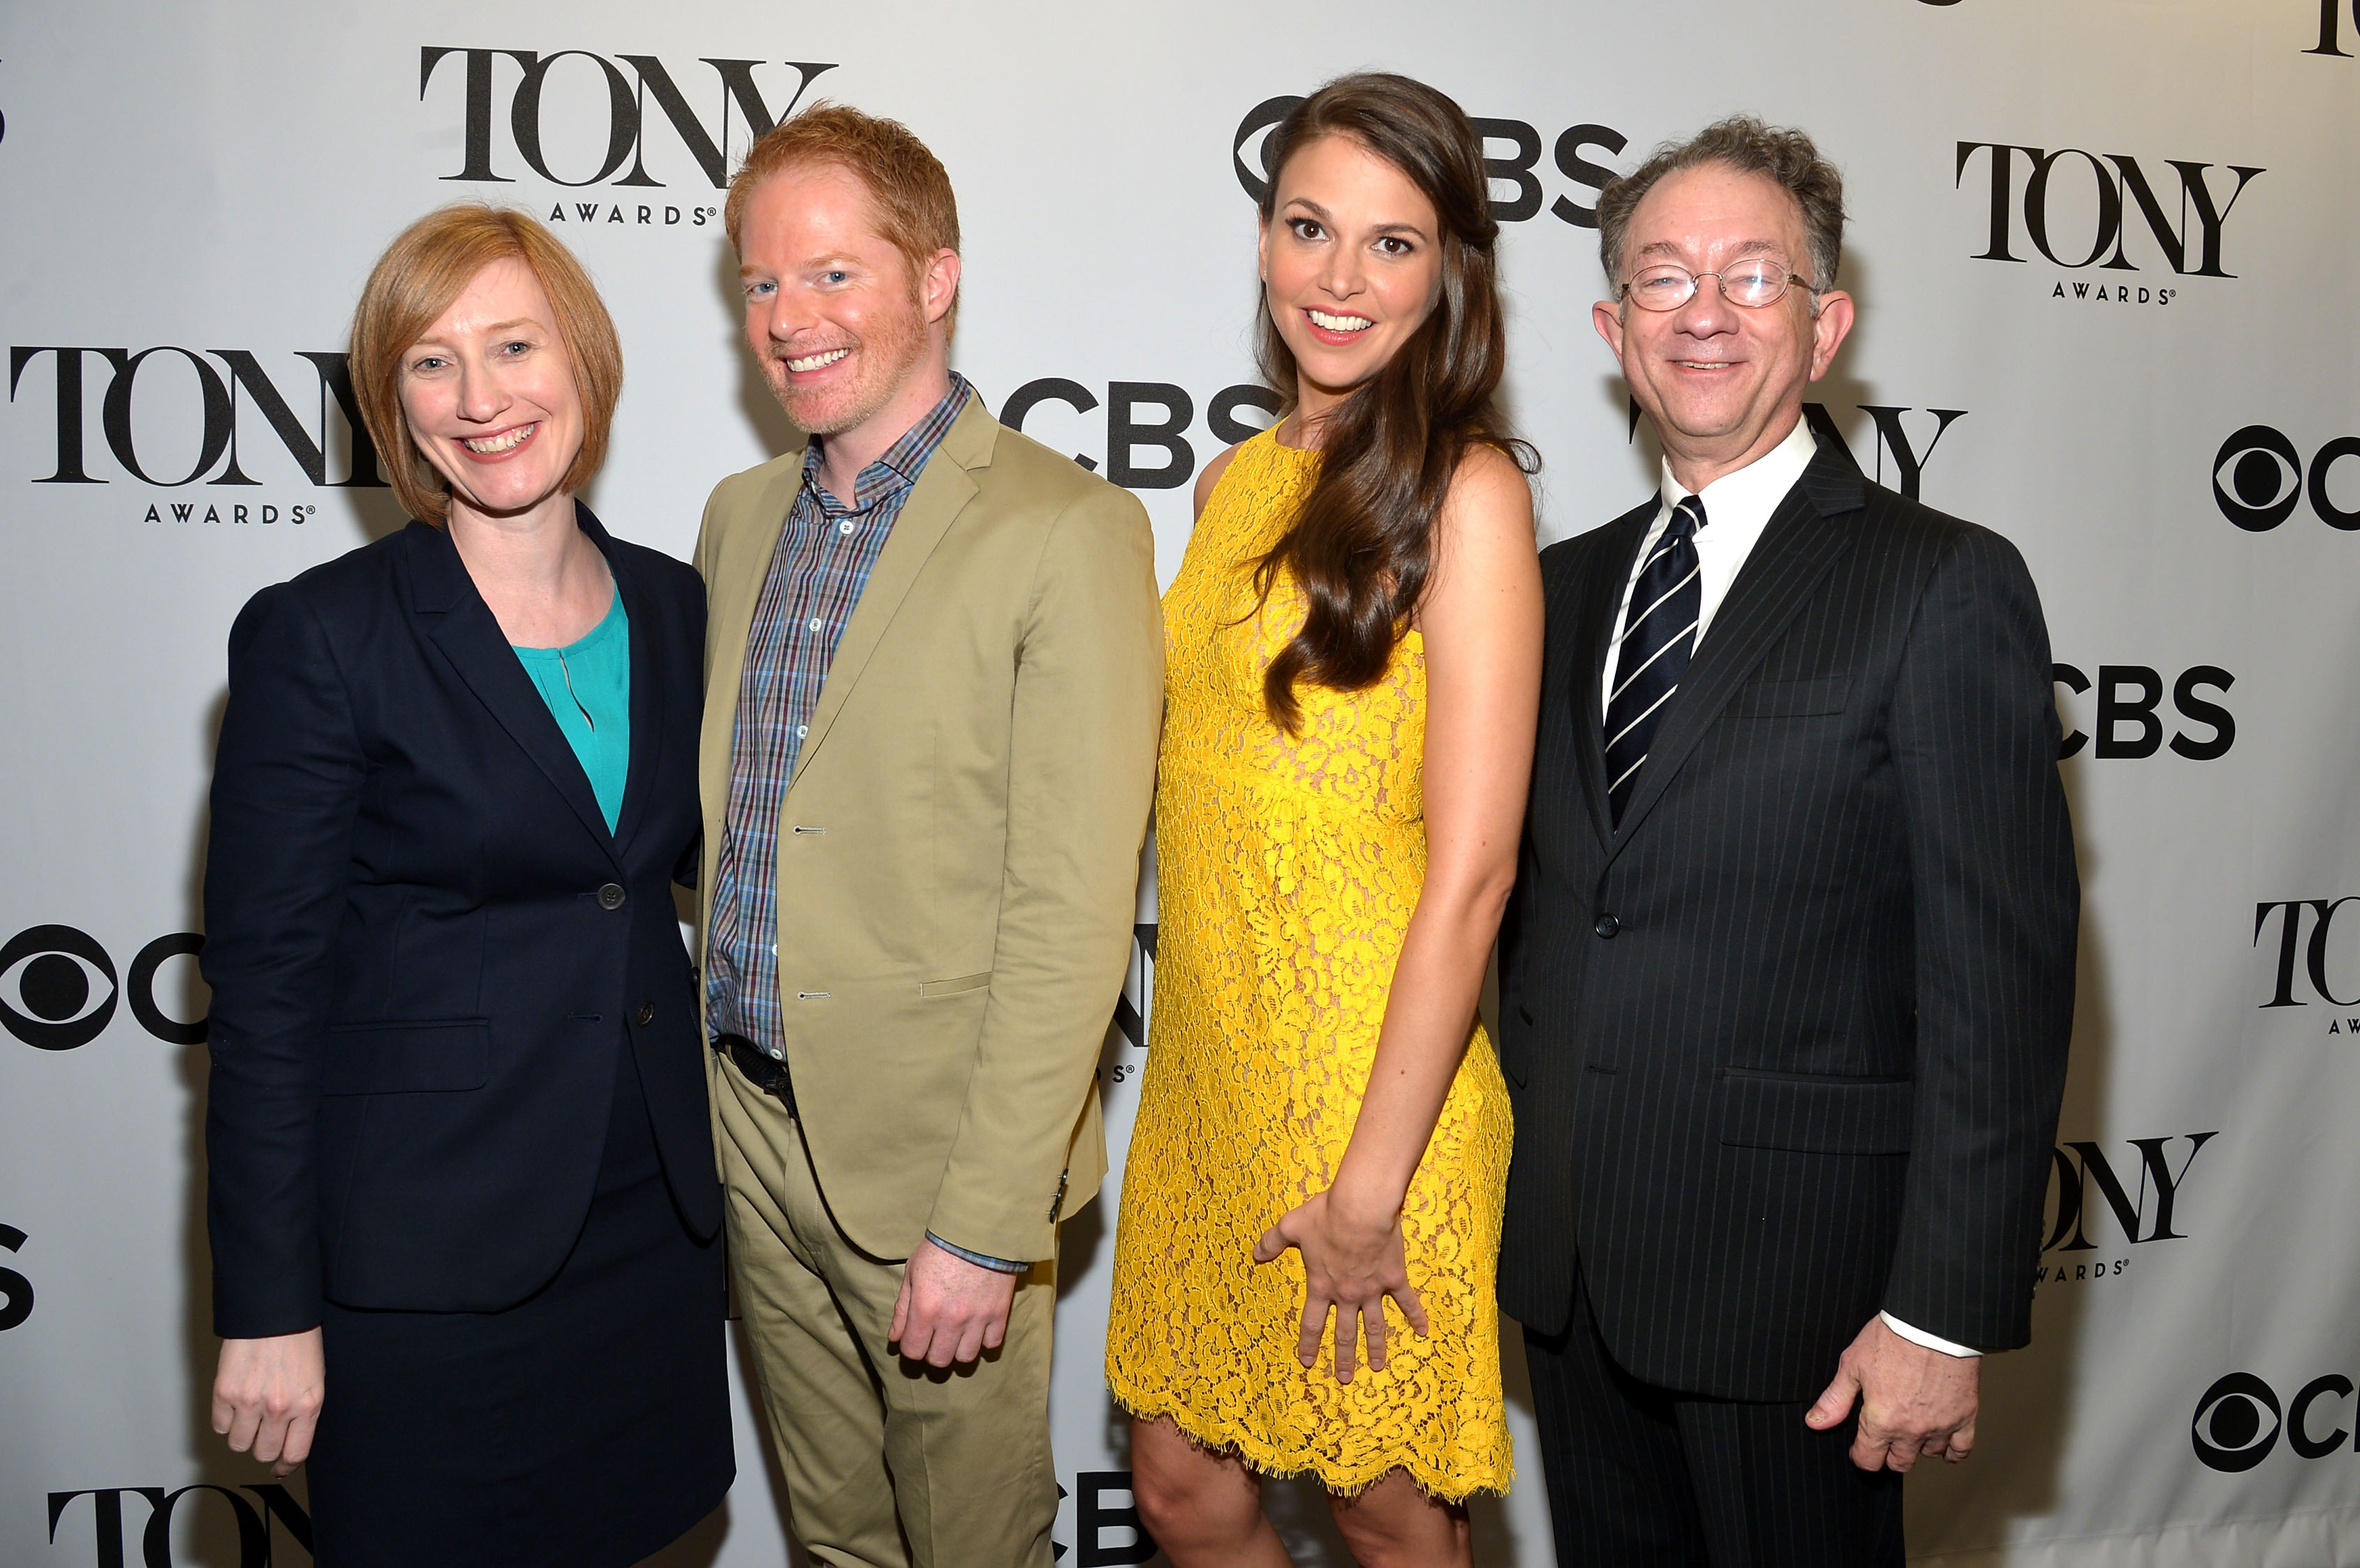 The 2013 Tony Awards Nominations Ceremony